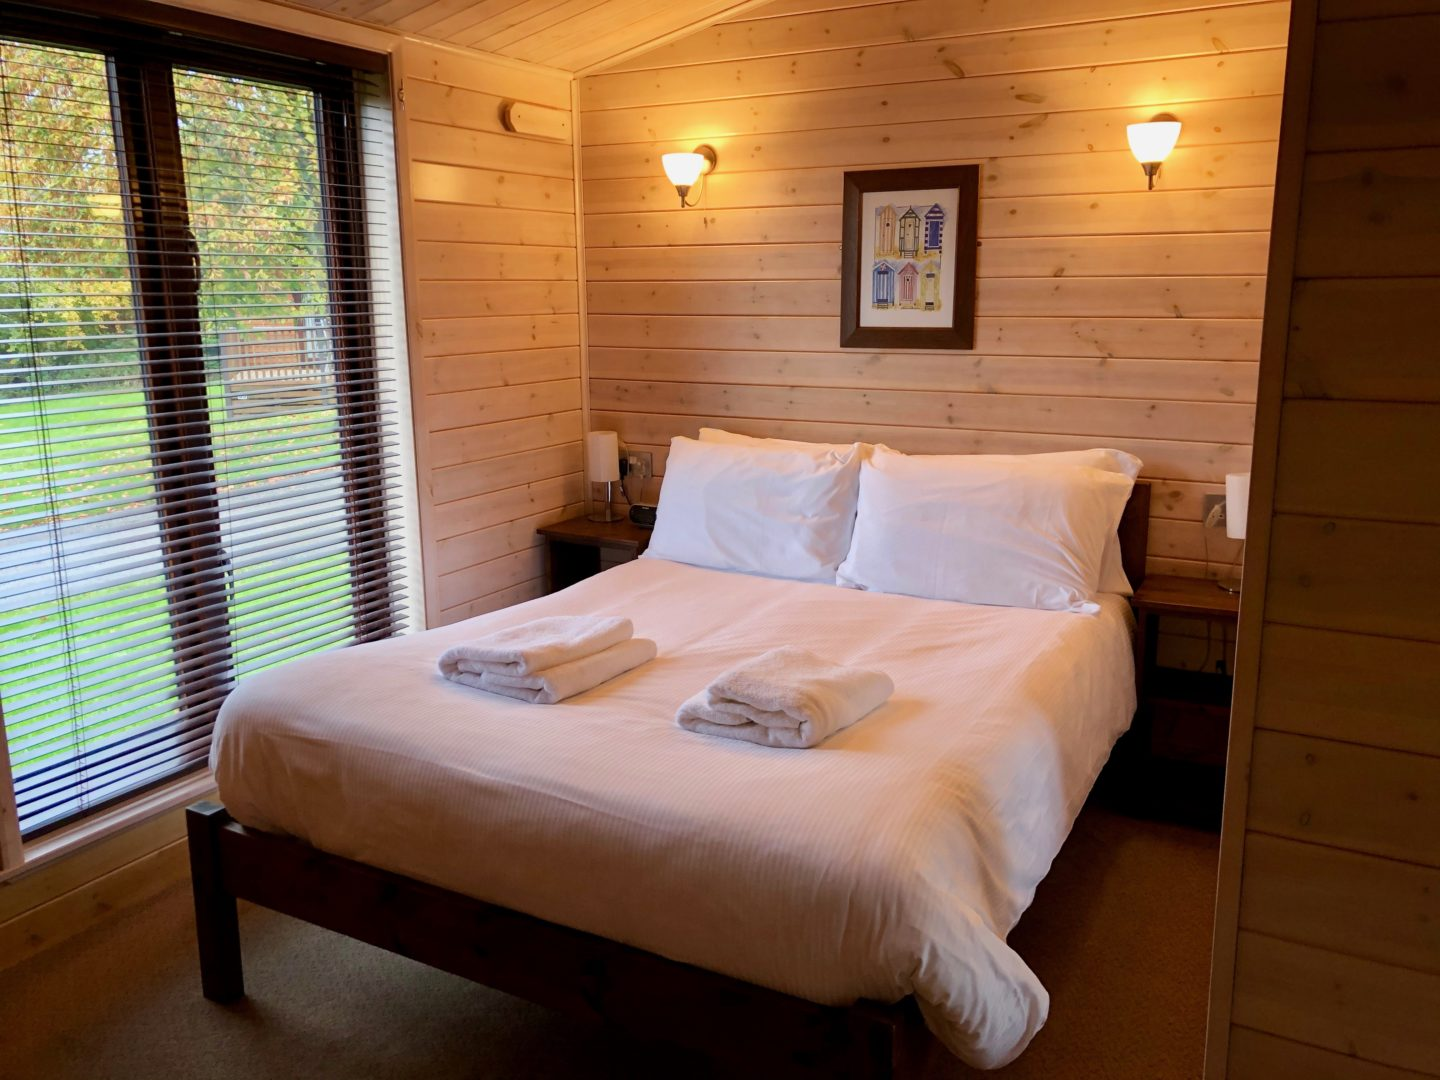 Landal Sandybrook Peak District family review - a relaxing autumnal long weekend break - Classic Vogue Lodge, master bedroom